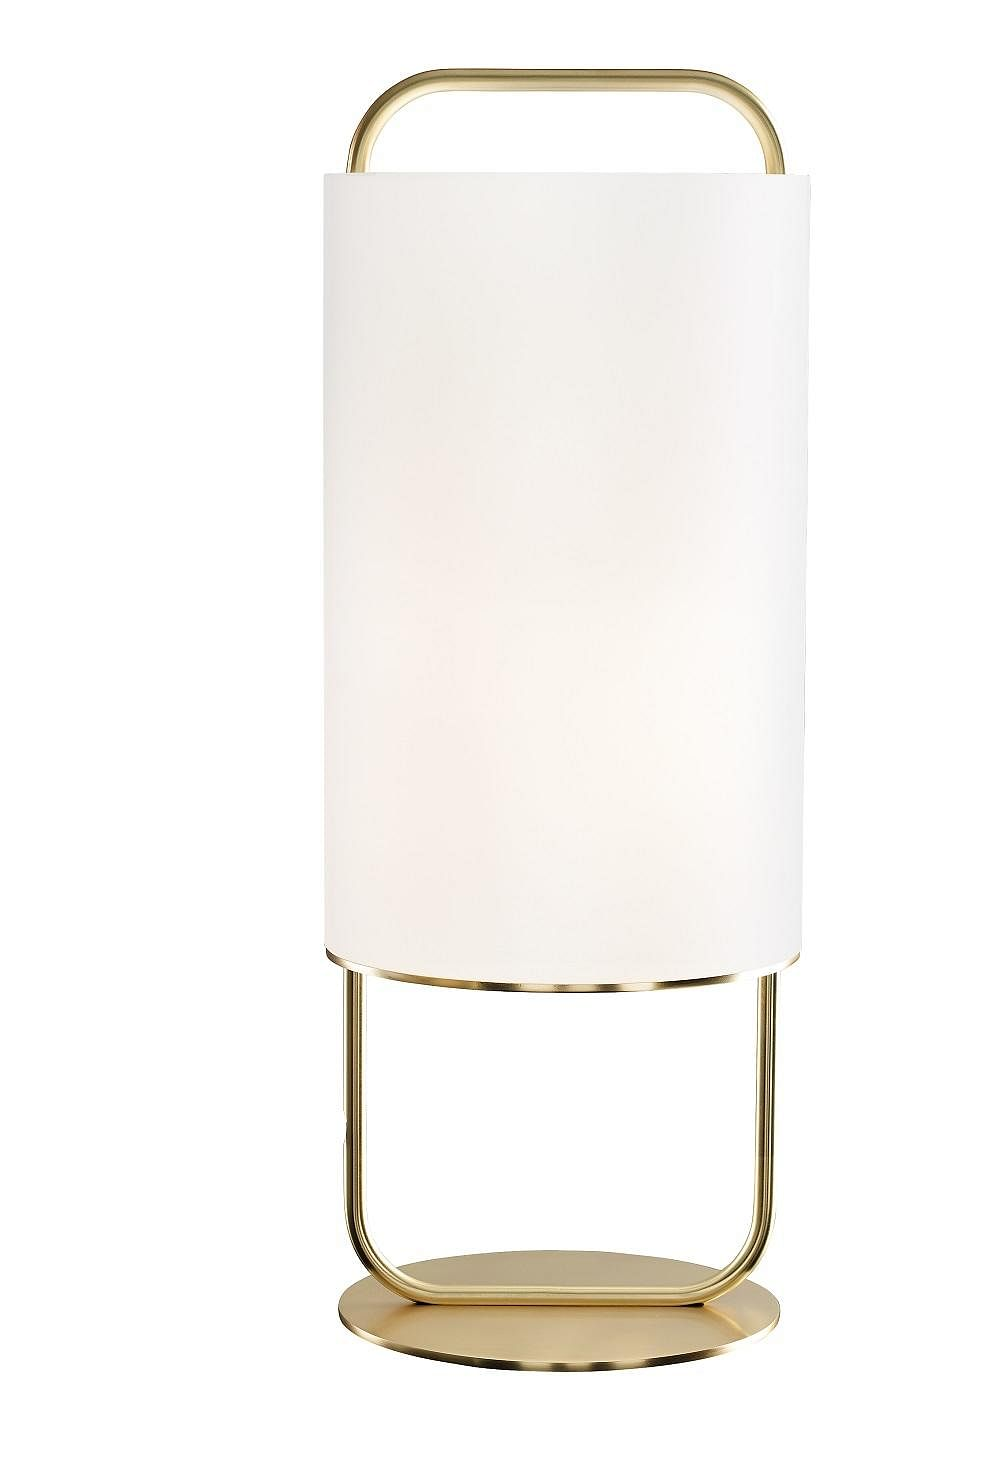 Shopping: 10 contemporary lamps that will enhance simple, stylish spaces 8